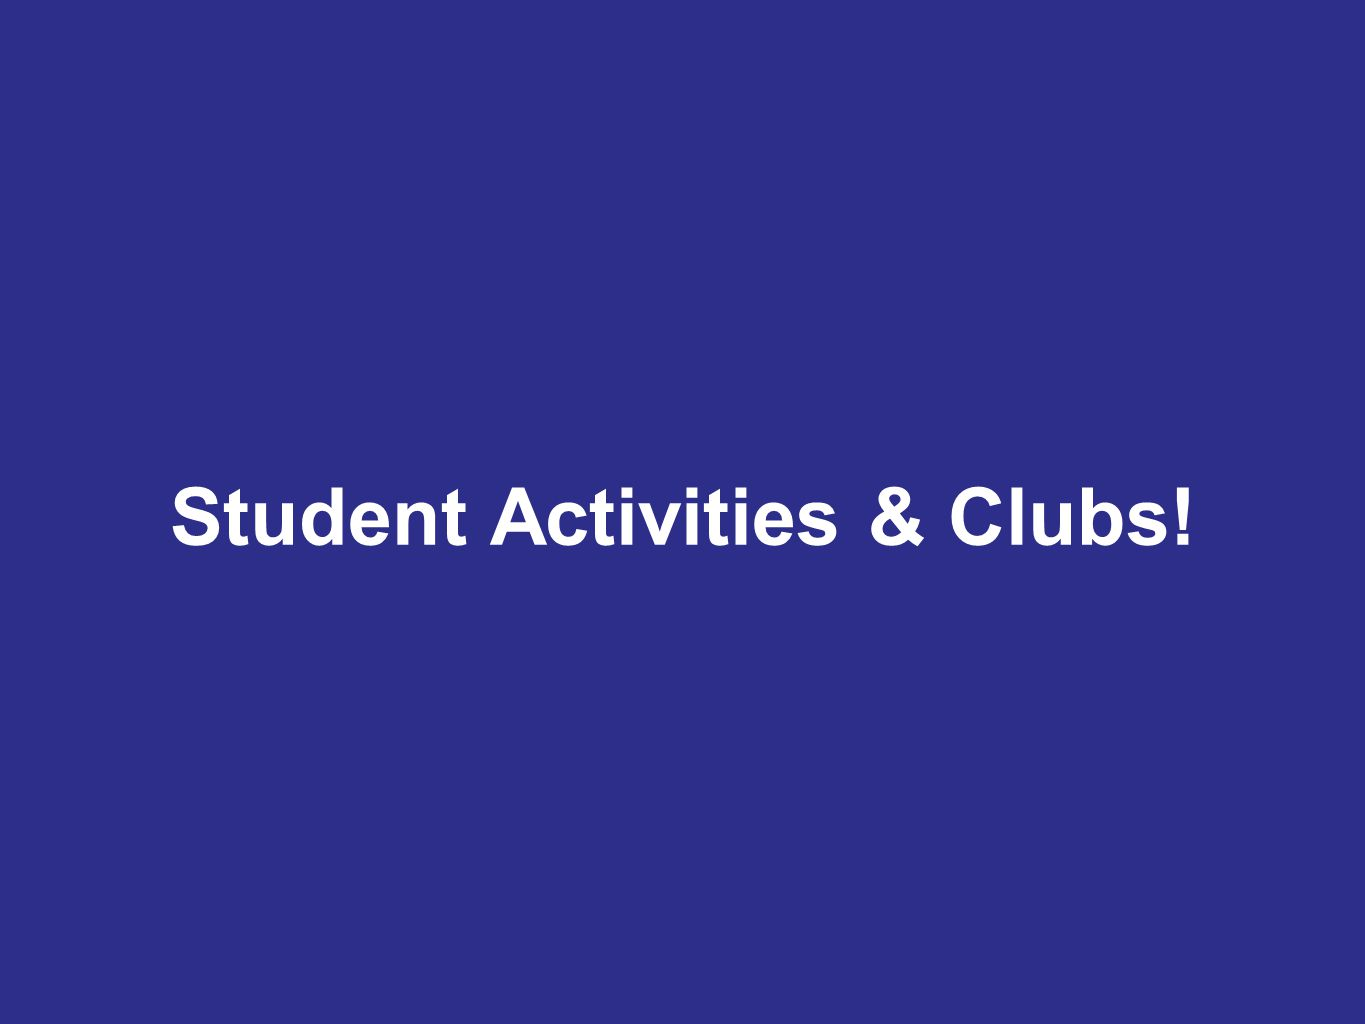 Student Activities & Clubs!